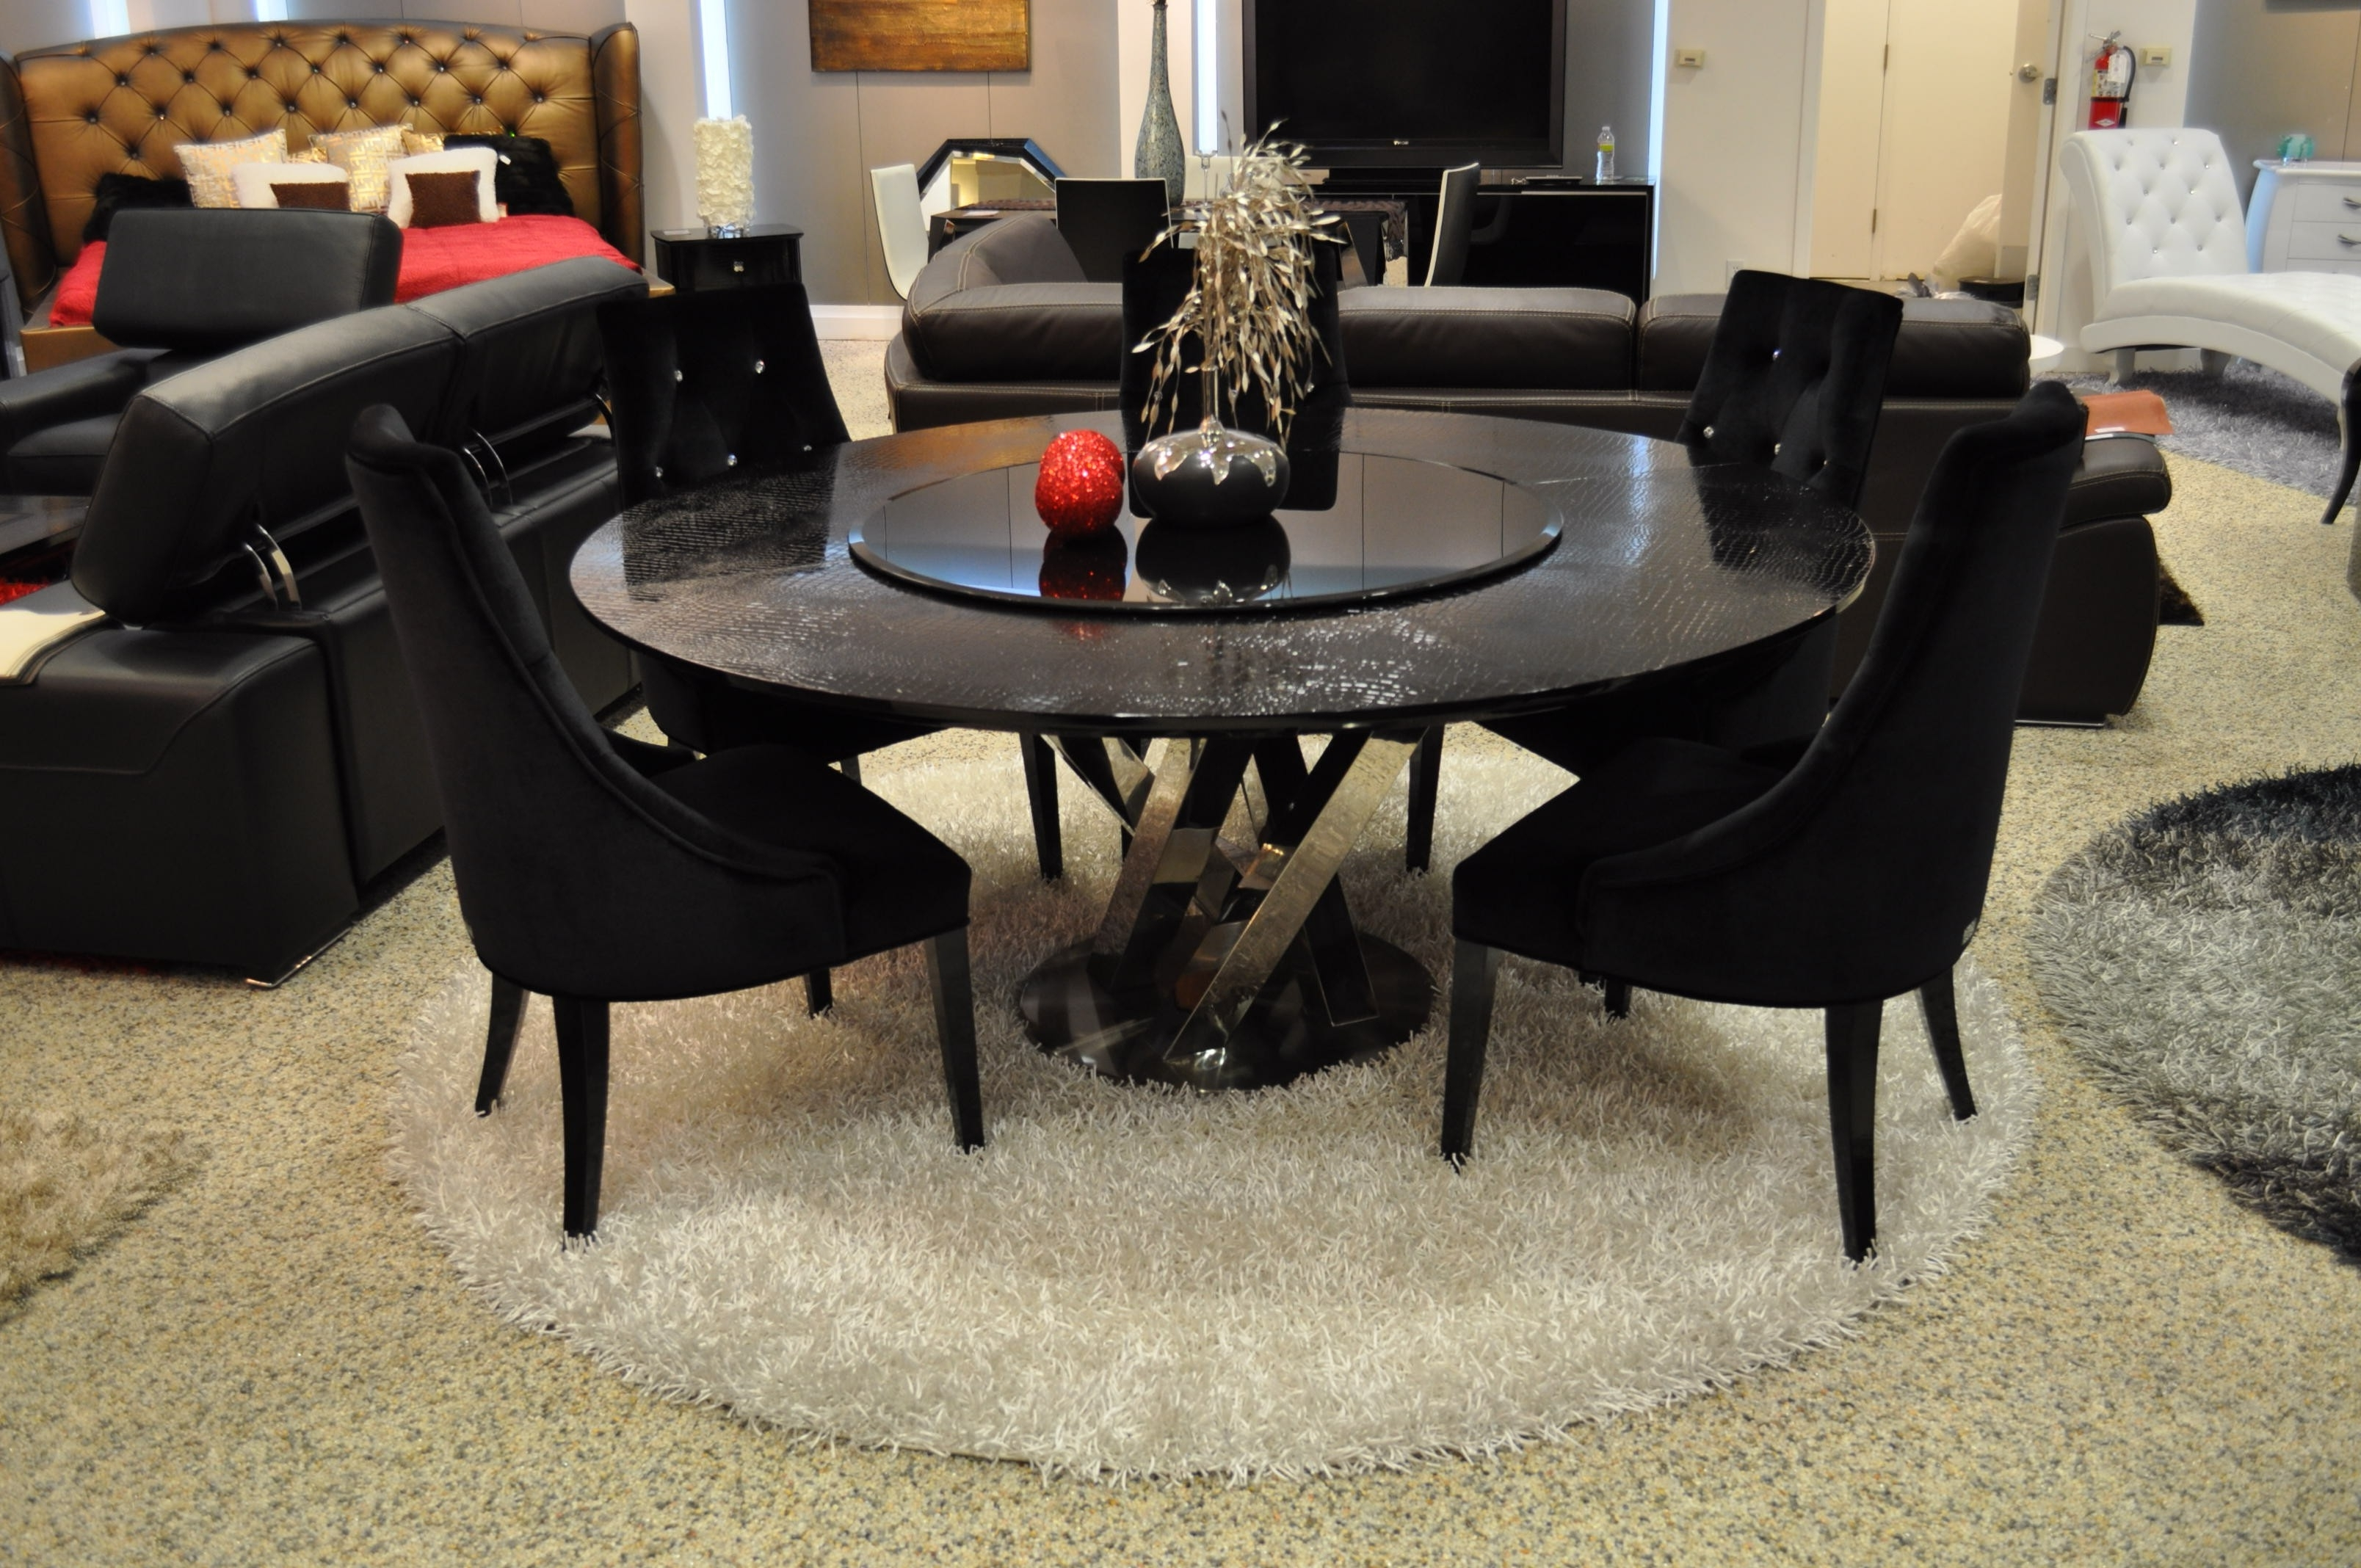 Most Recently Released 30 Eyecatching Round Dining Room Tables Design Ideas For Dining Pertaining To Black Circular Dining Tables (View 17 of 25)